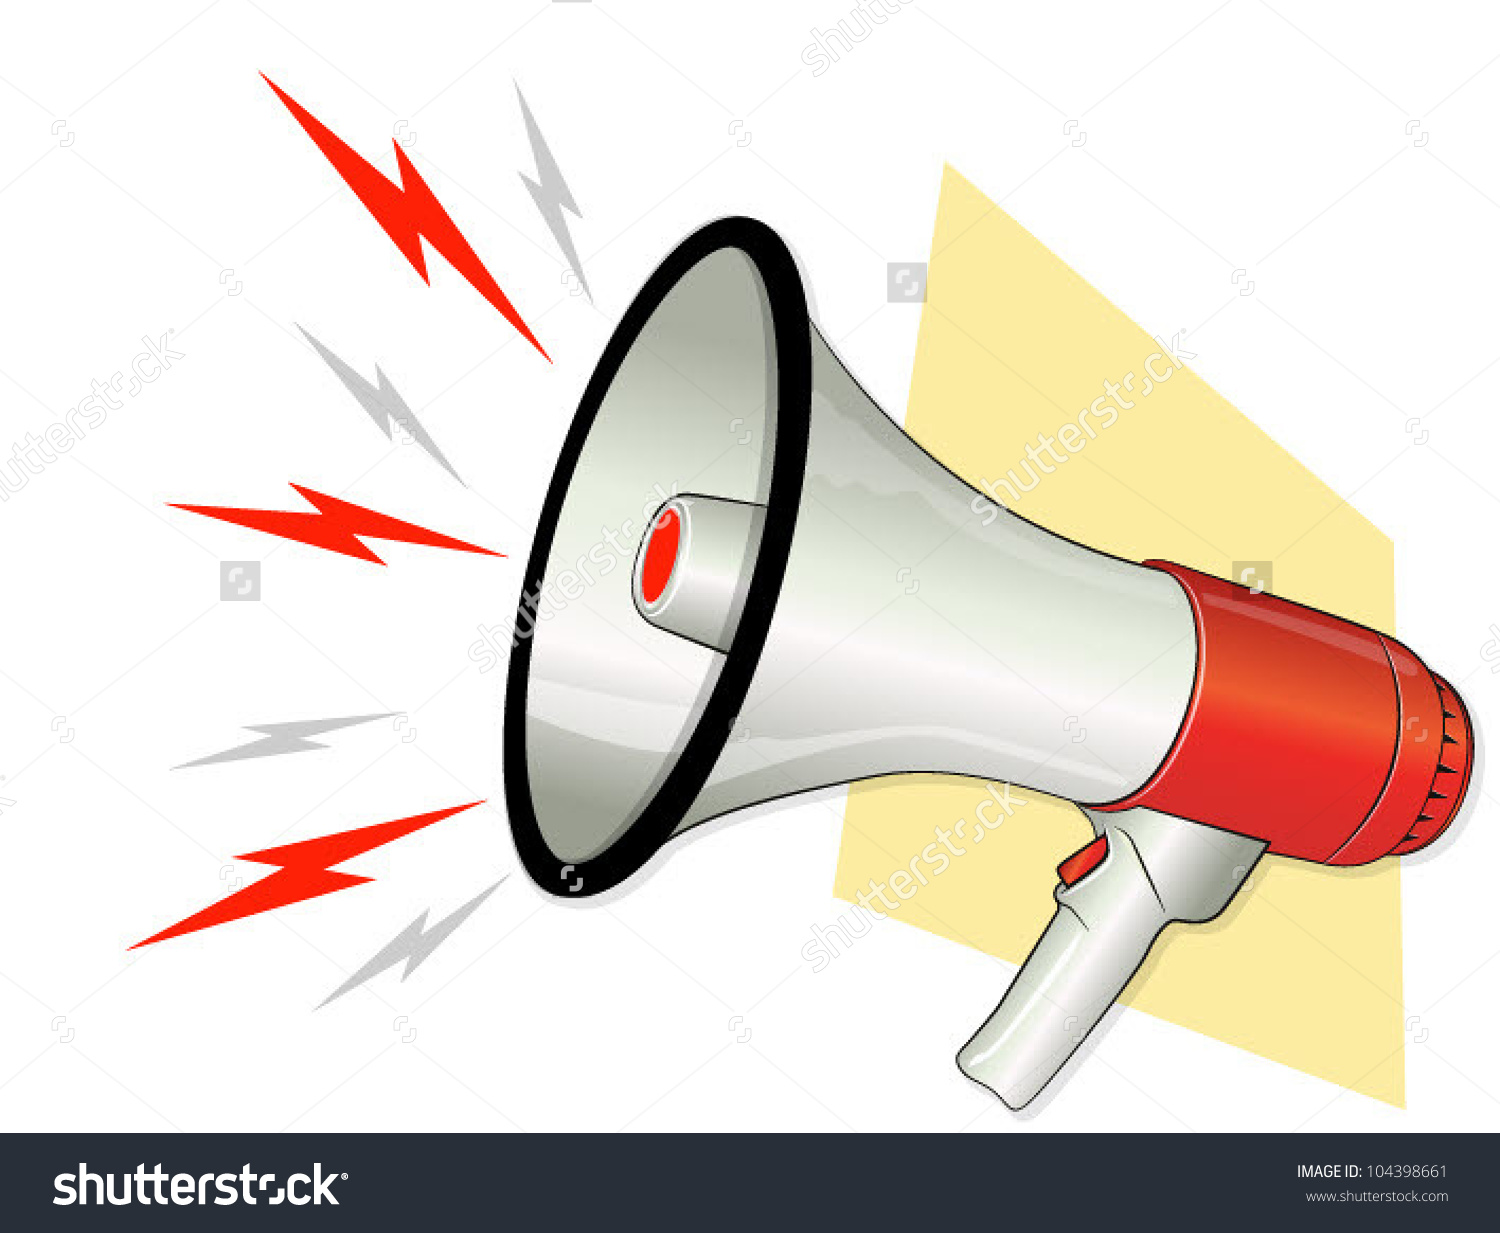 Loud pictures station . Announcements clipart sound